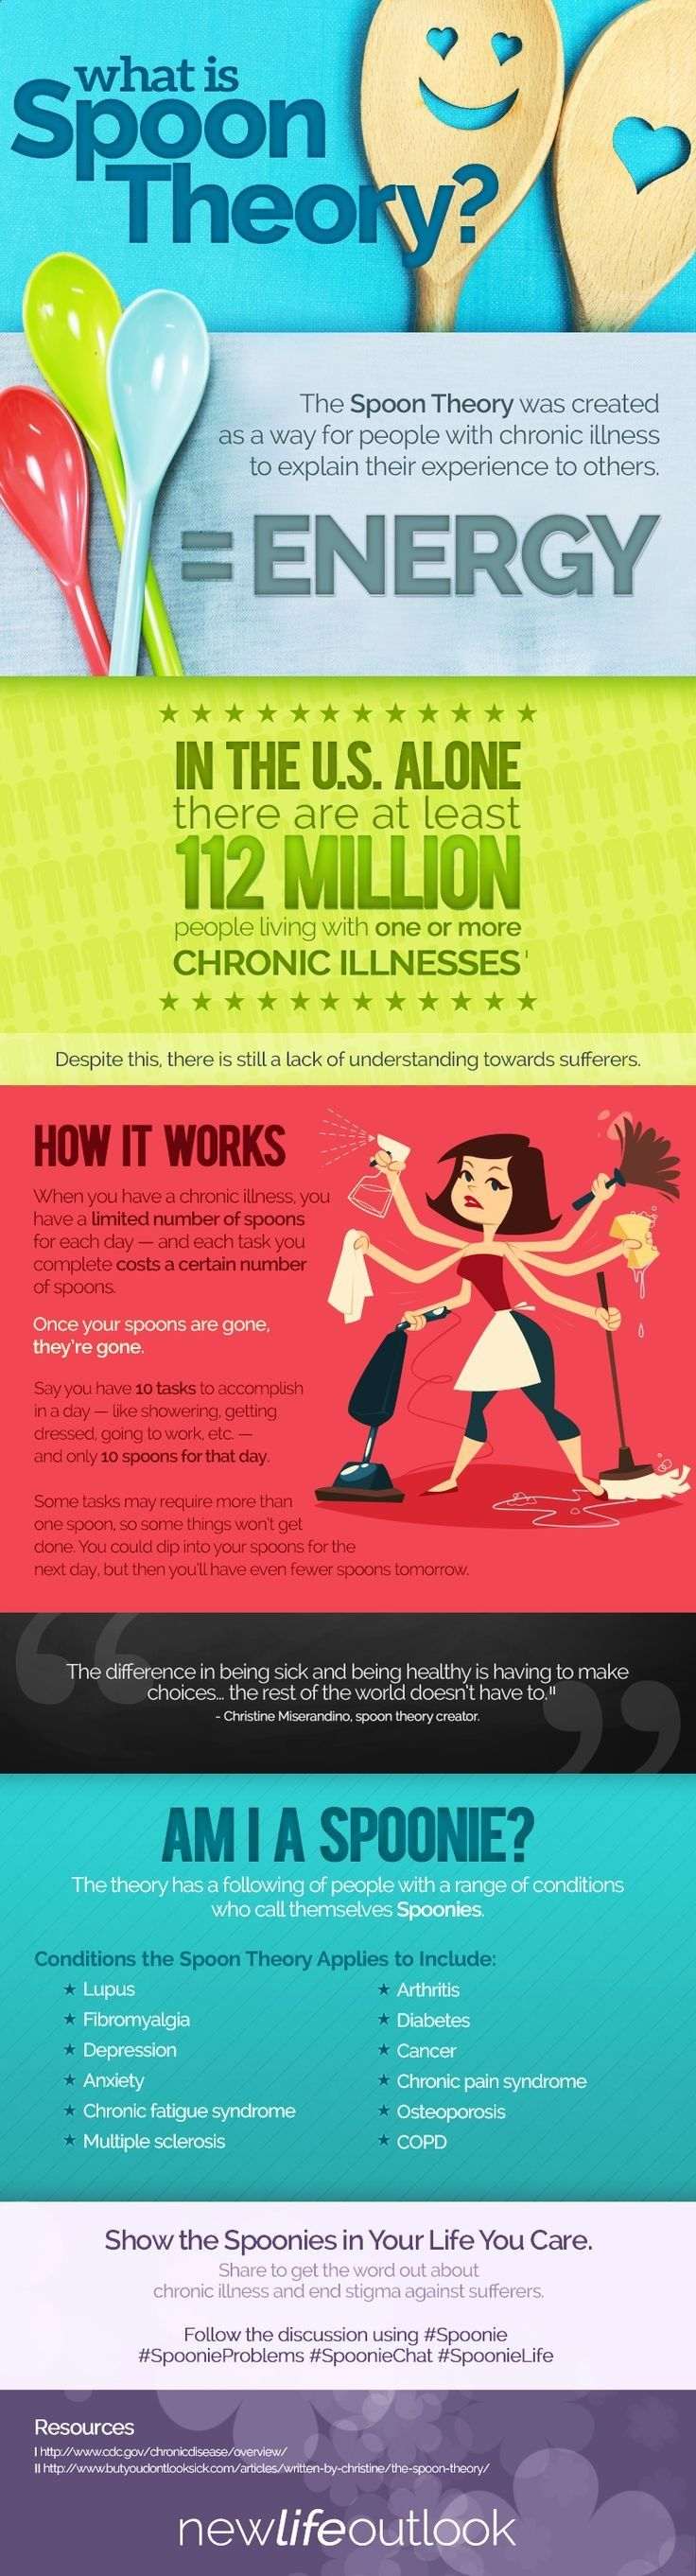 If you live with chronic illness, explaining your condition can be tough. The spoon theory was created to do just that, and has since become so much more.http://lupus.newlifeoutlook.com/infographics/what-is-spoon-theory/?utm_source=Pinterest&utm_medium=Social